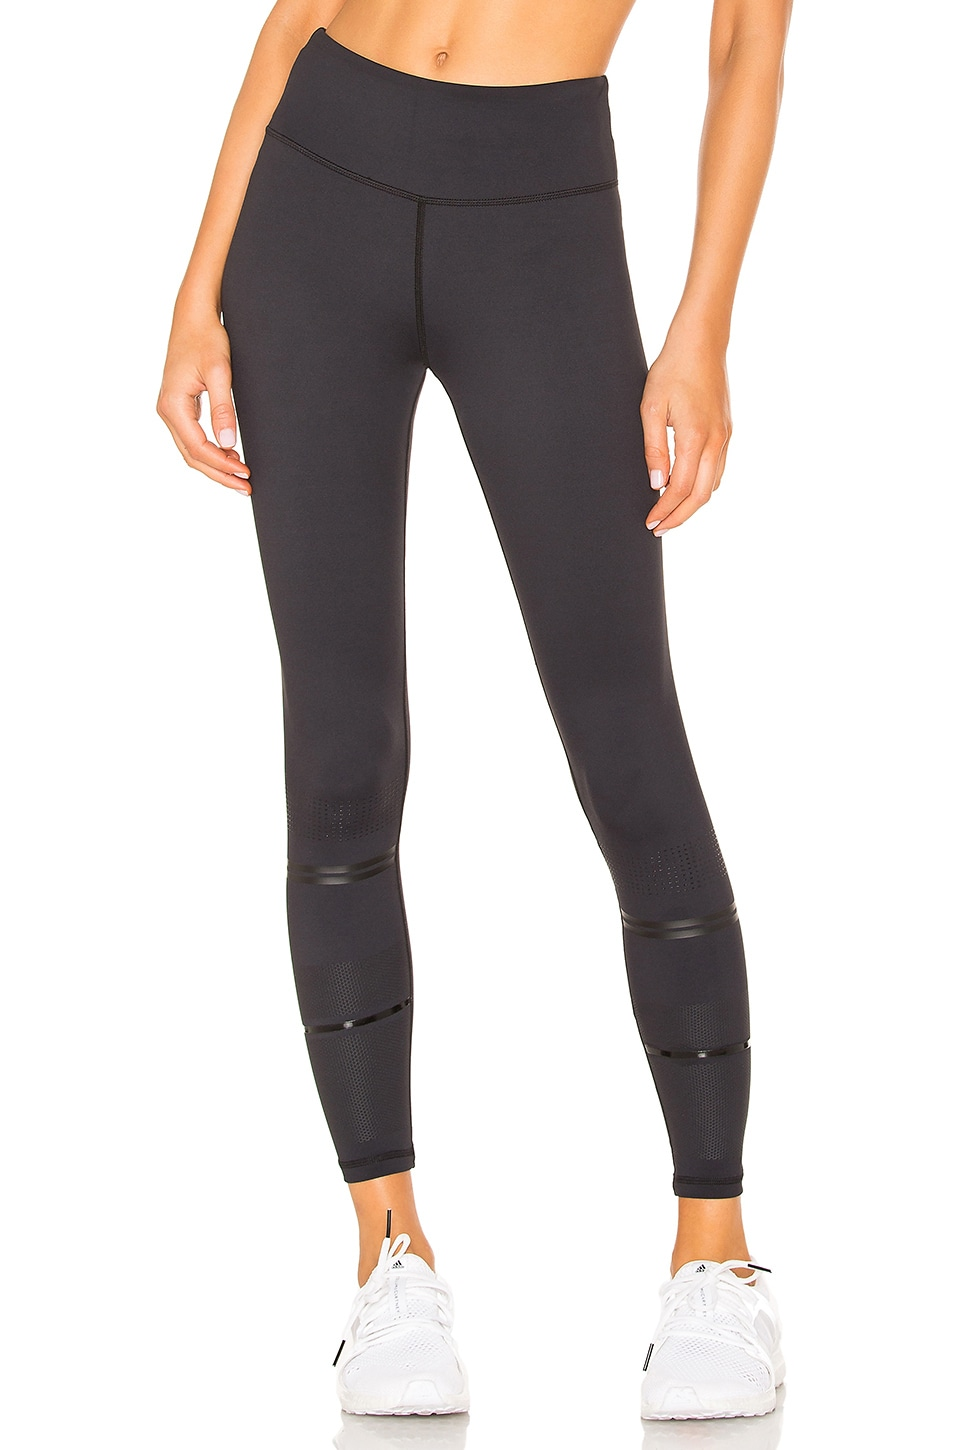 lilybod Zhalee Legging in Black Noir